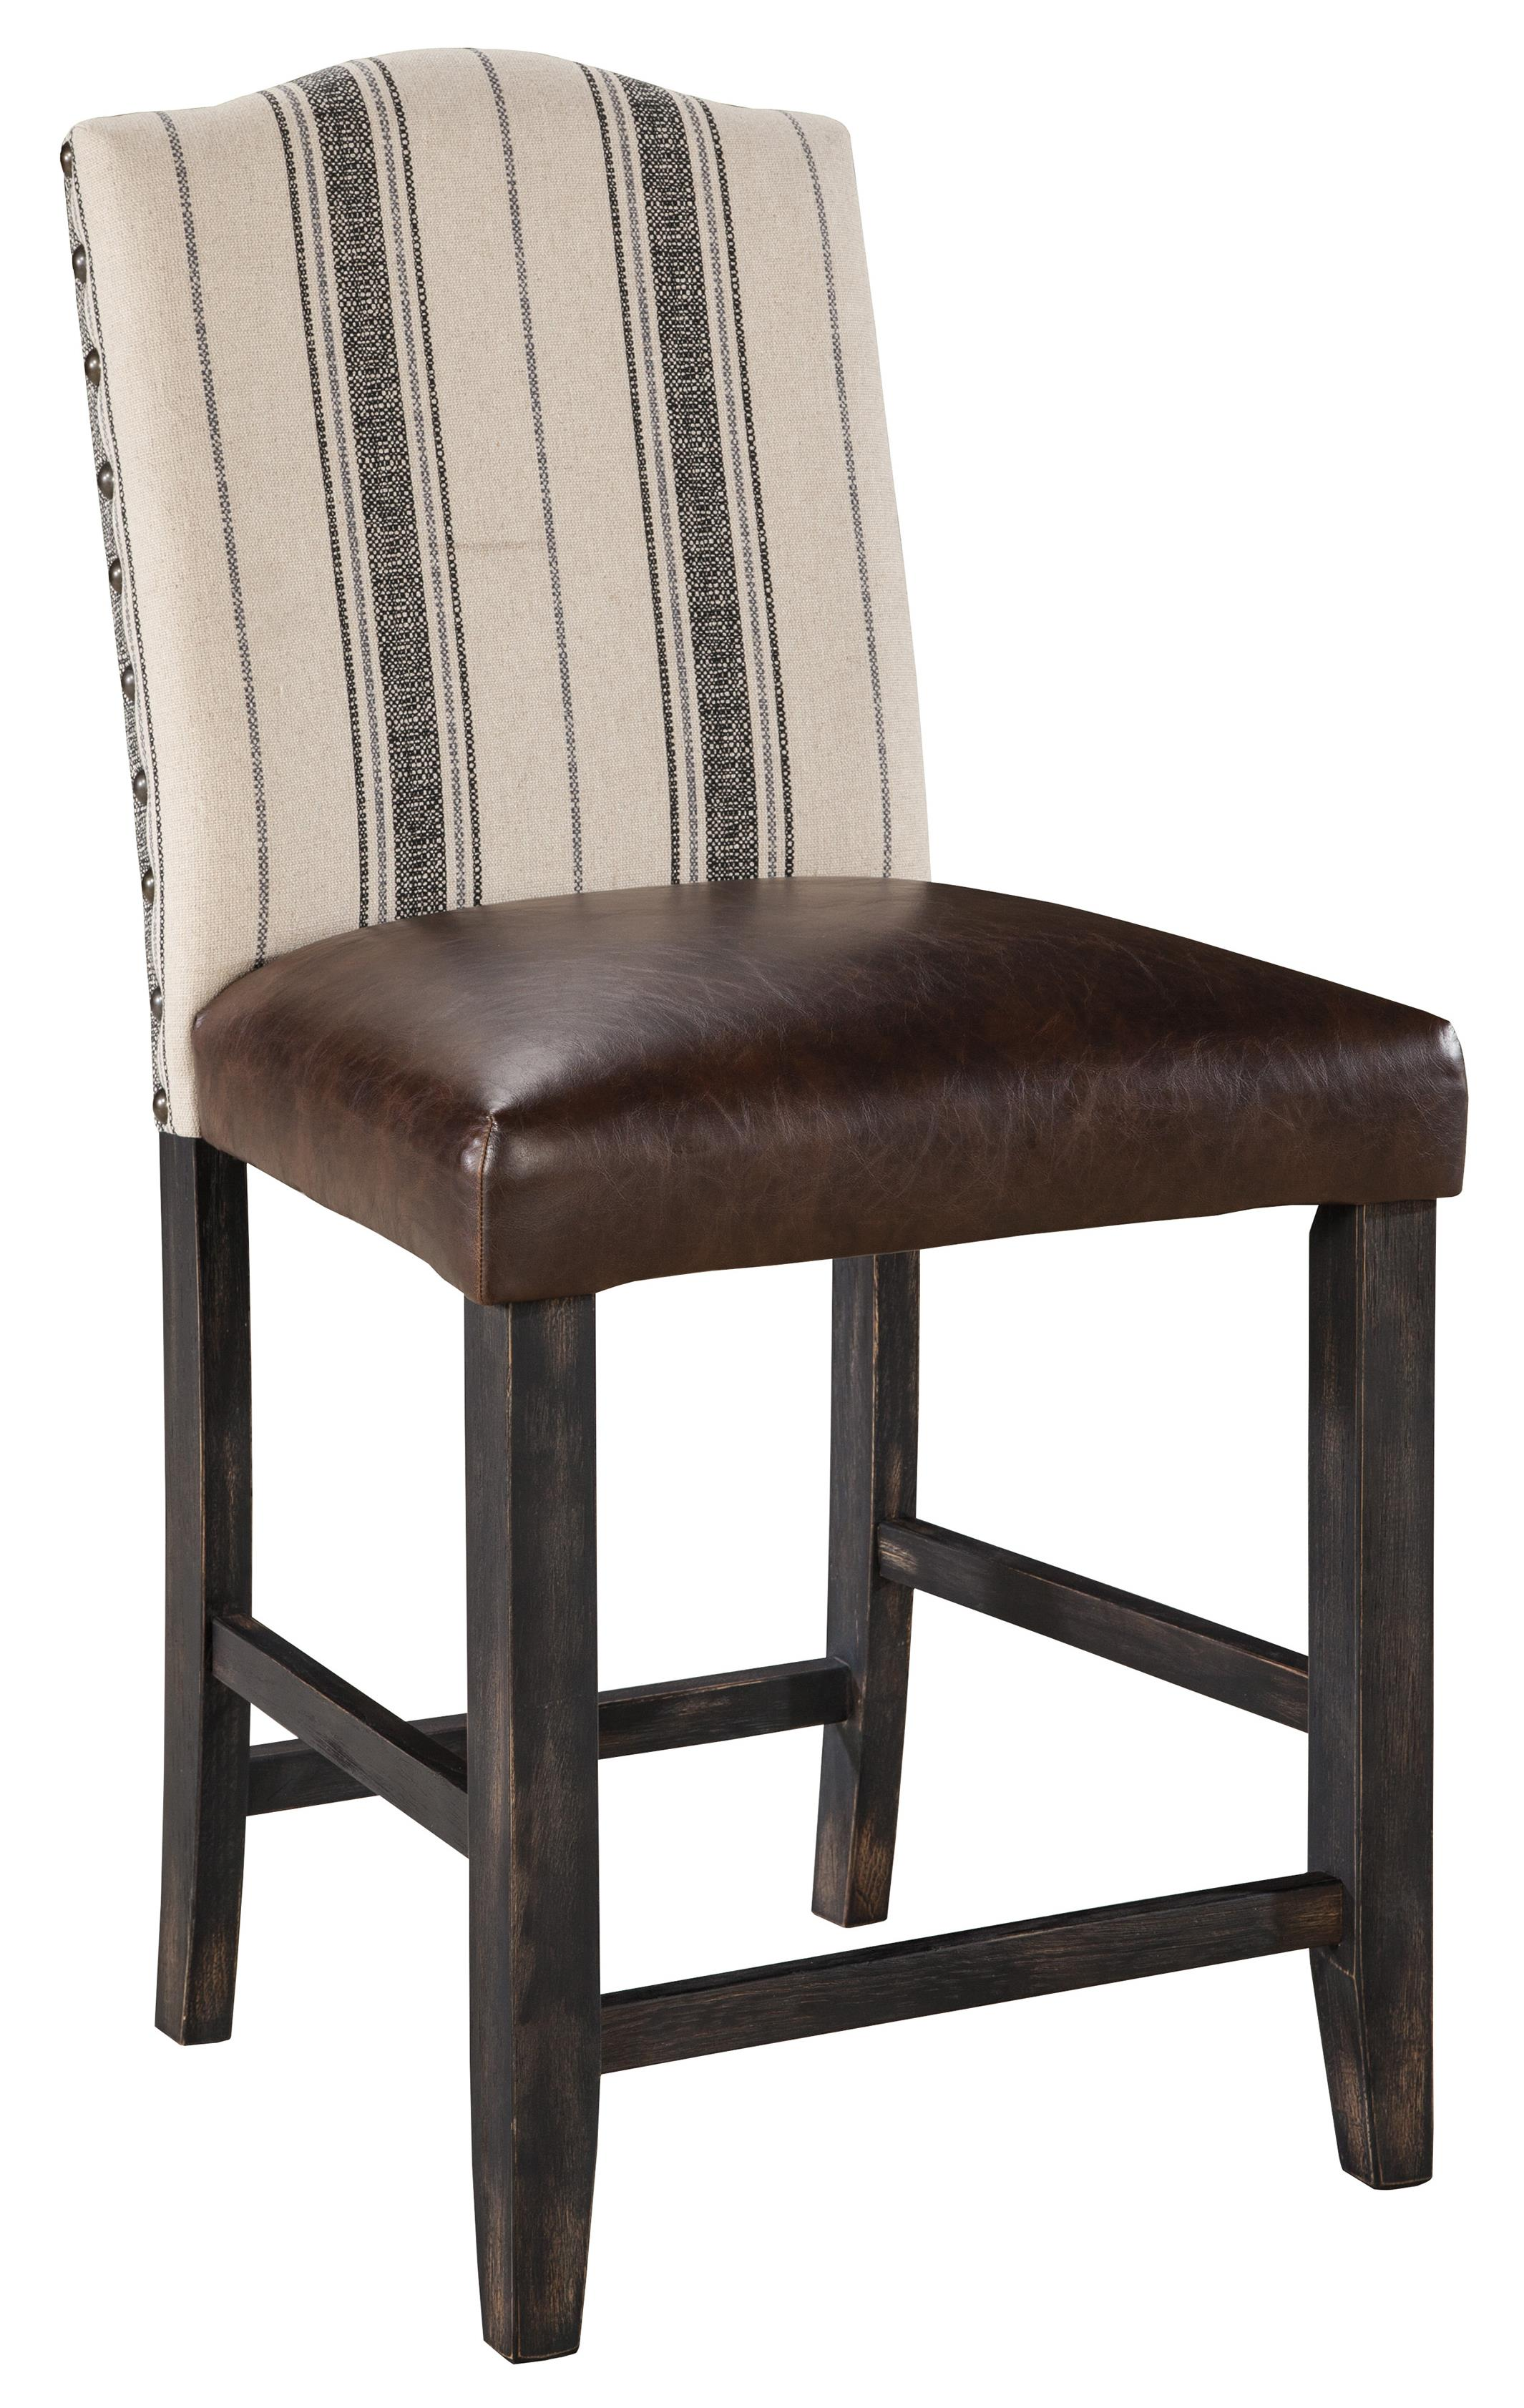 Signature Design by Ashley Moriann Upholstered Barstool - Item Number: D608-324